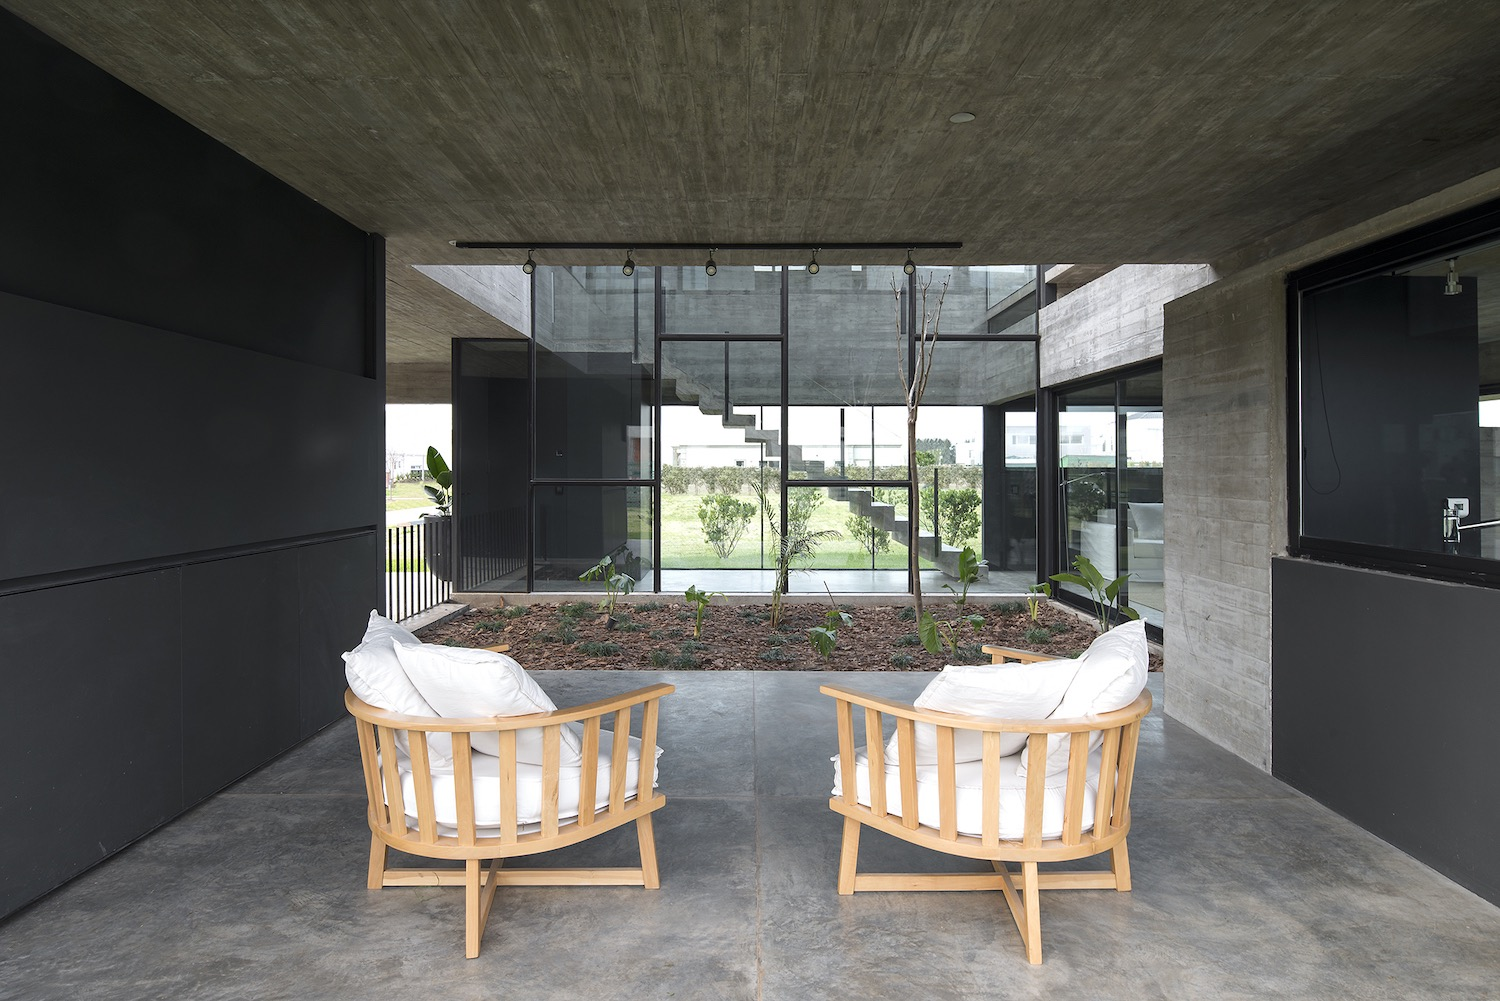 wooden chairs near the indoor courtyard